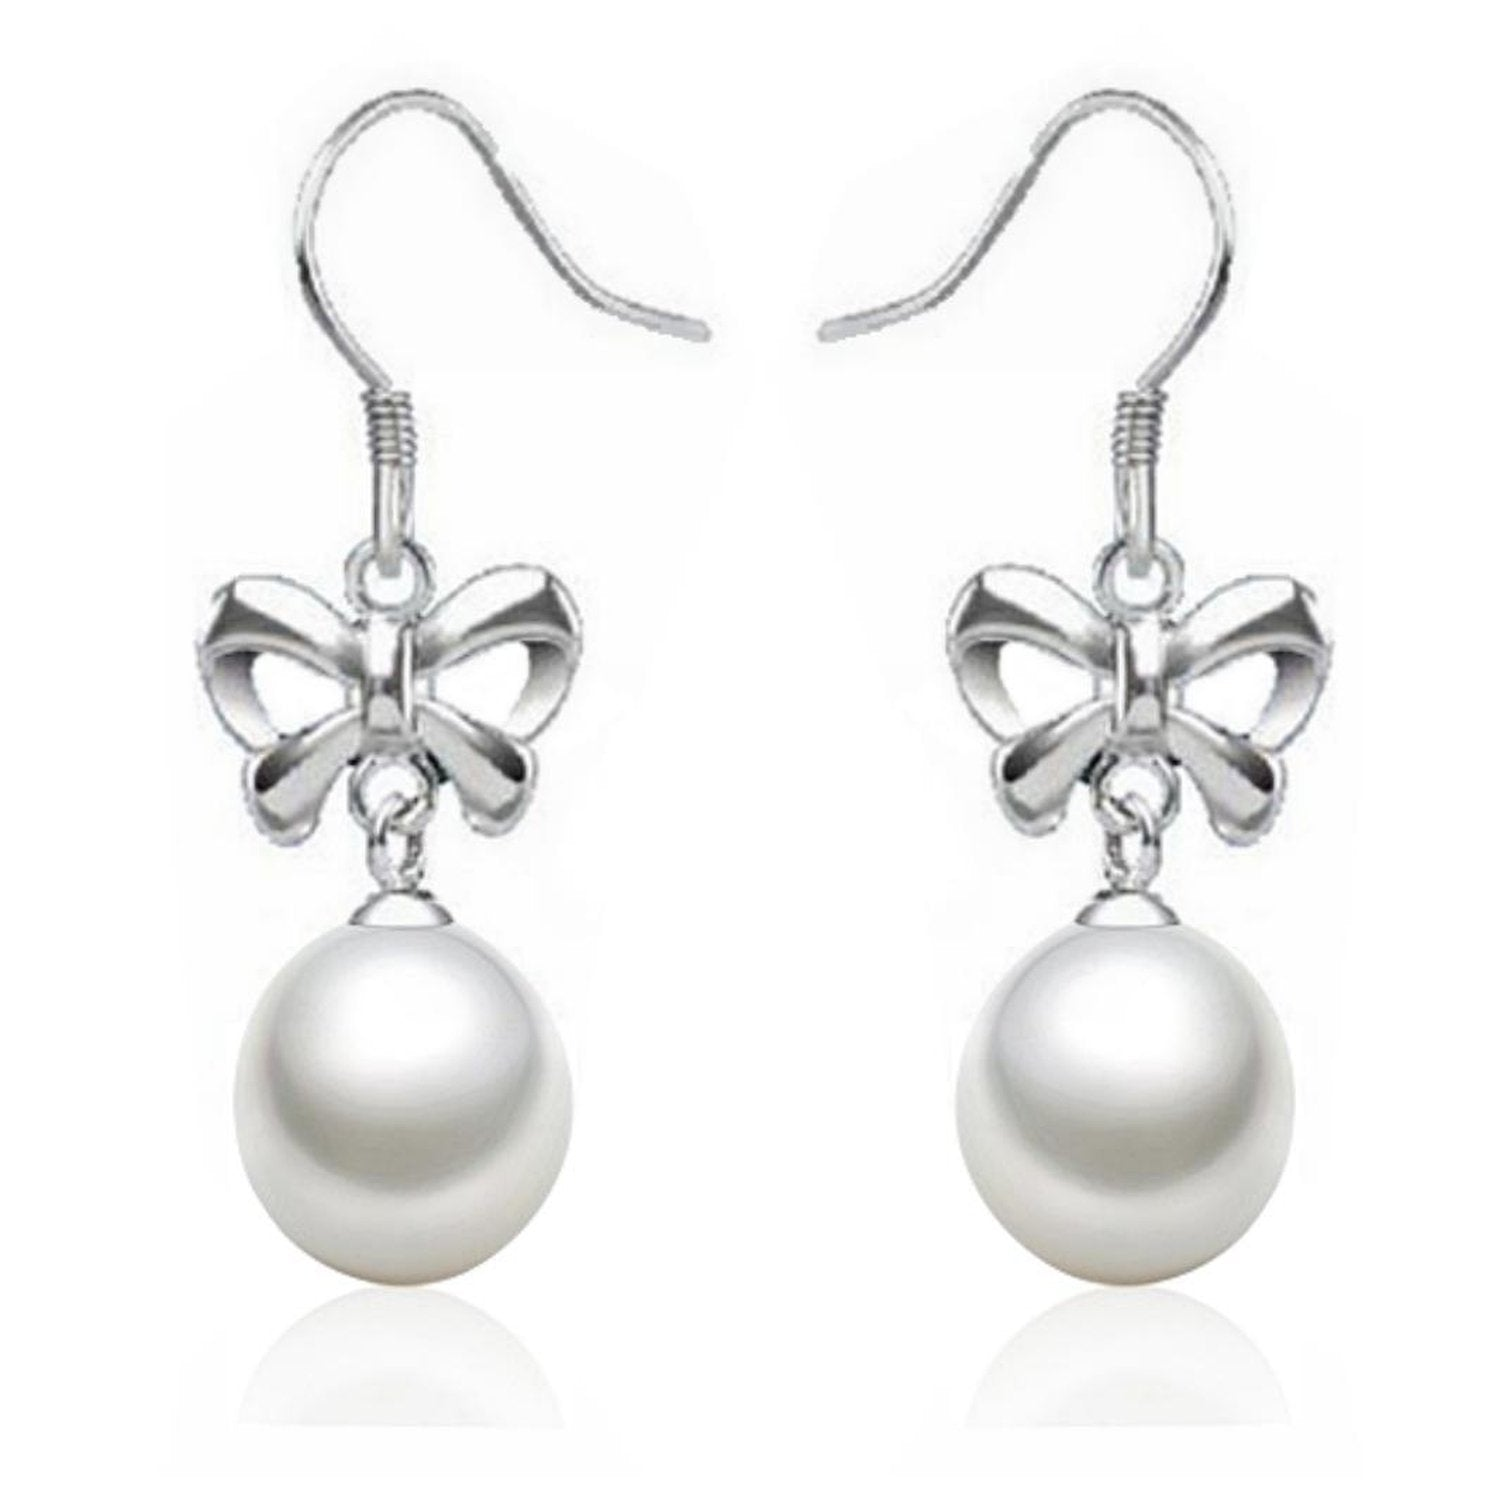 Earrings - Enchanting Gift Of Ocean Pearl Earrings